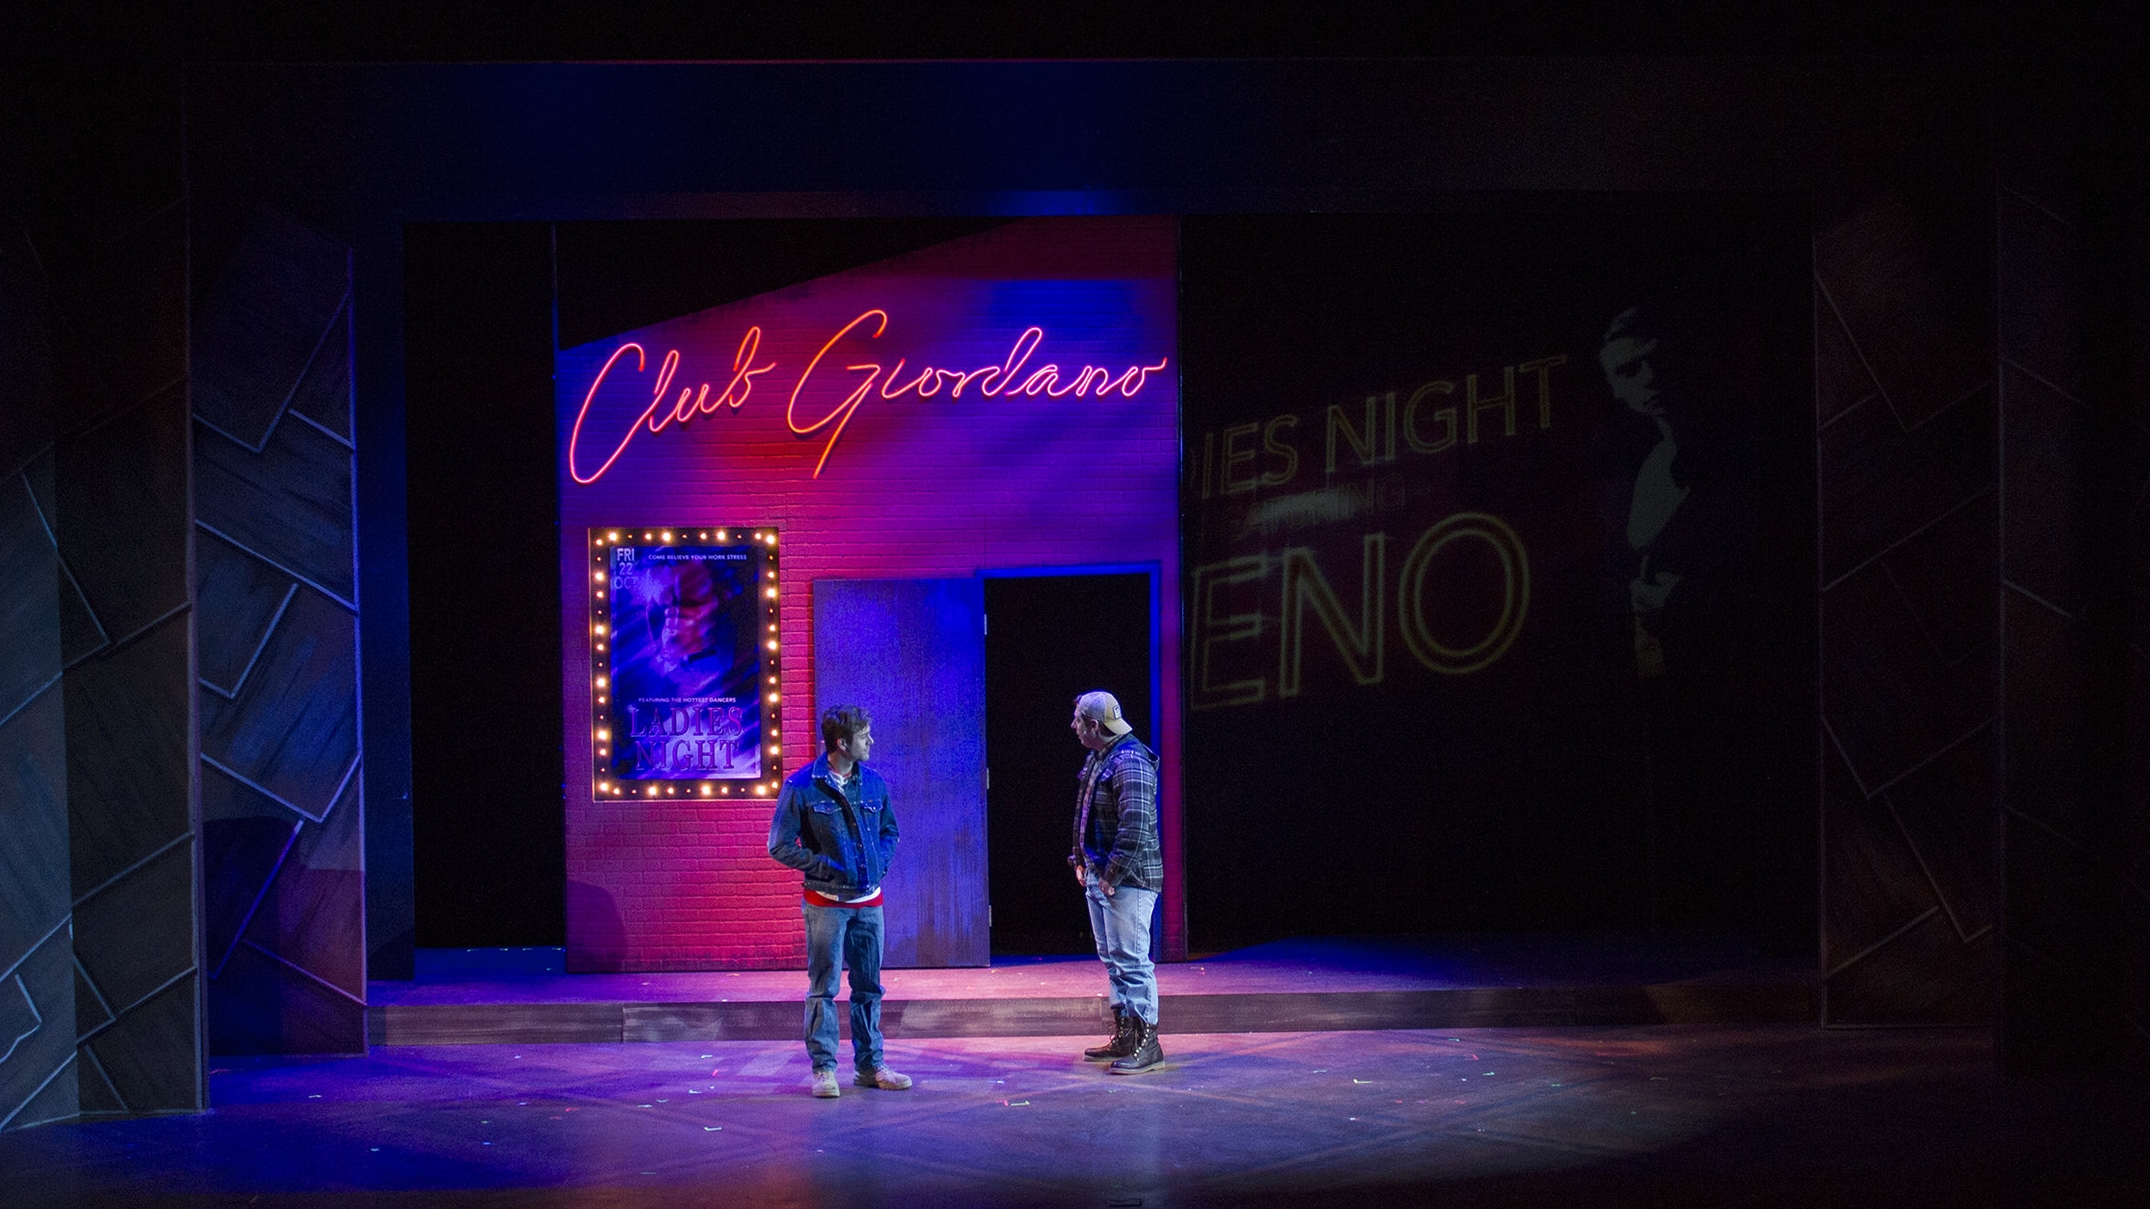 The Full Monty - lighting & projections